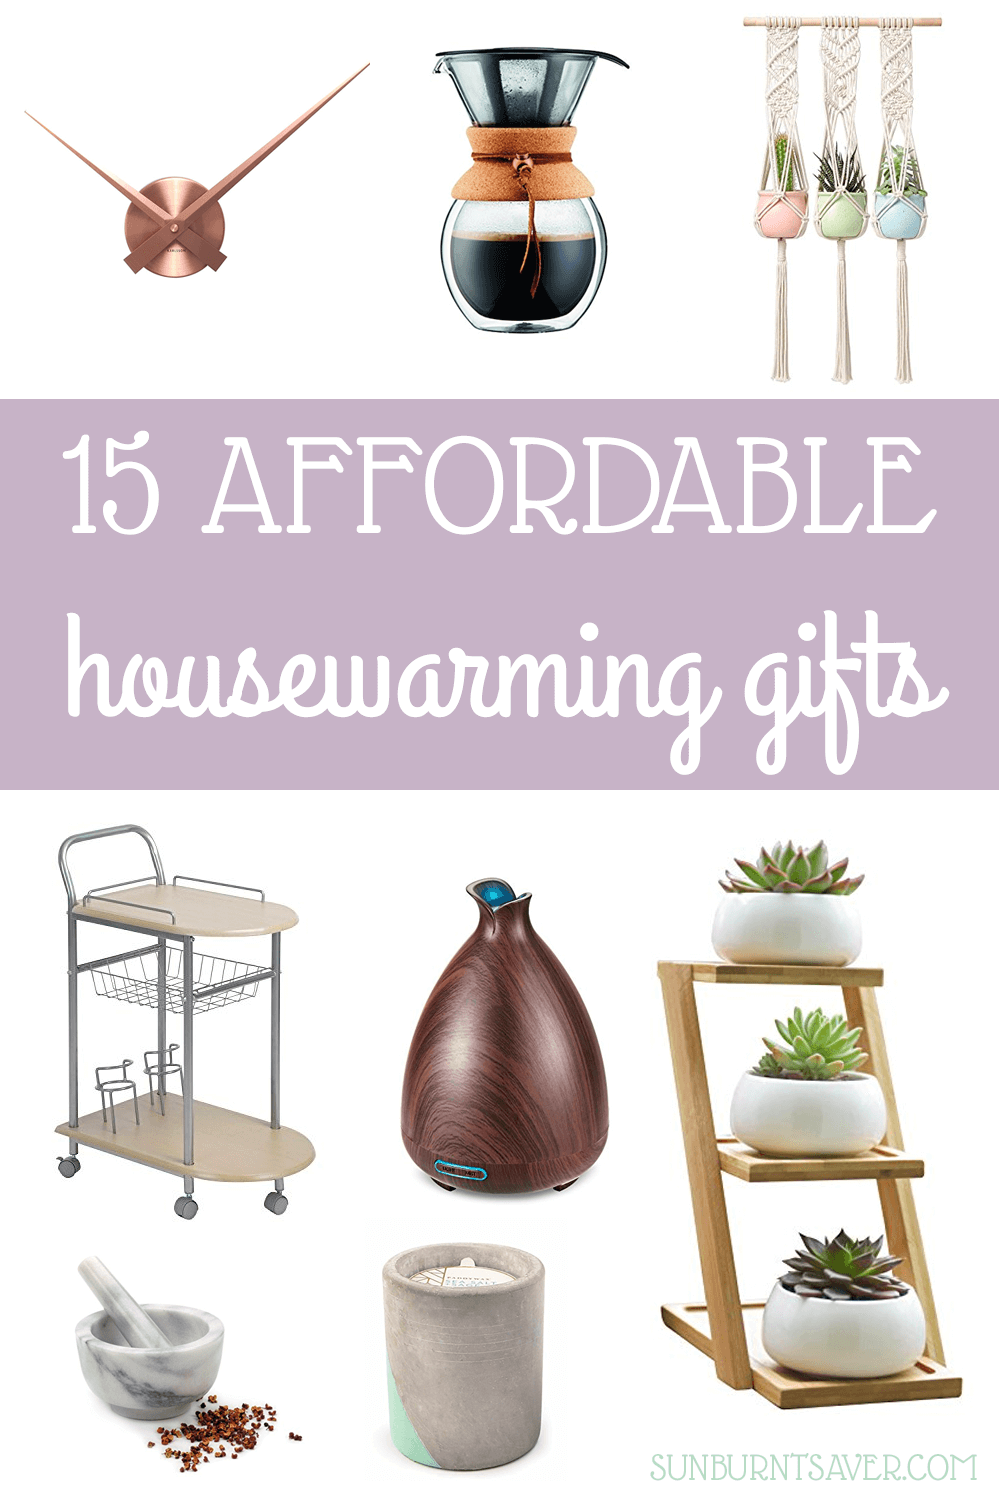 15 Affordable And Cute Housewarming Gifts Sunburnt Saver